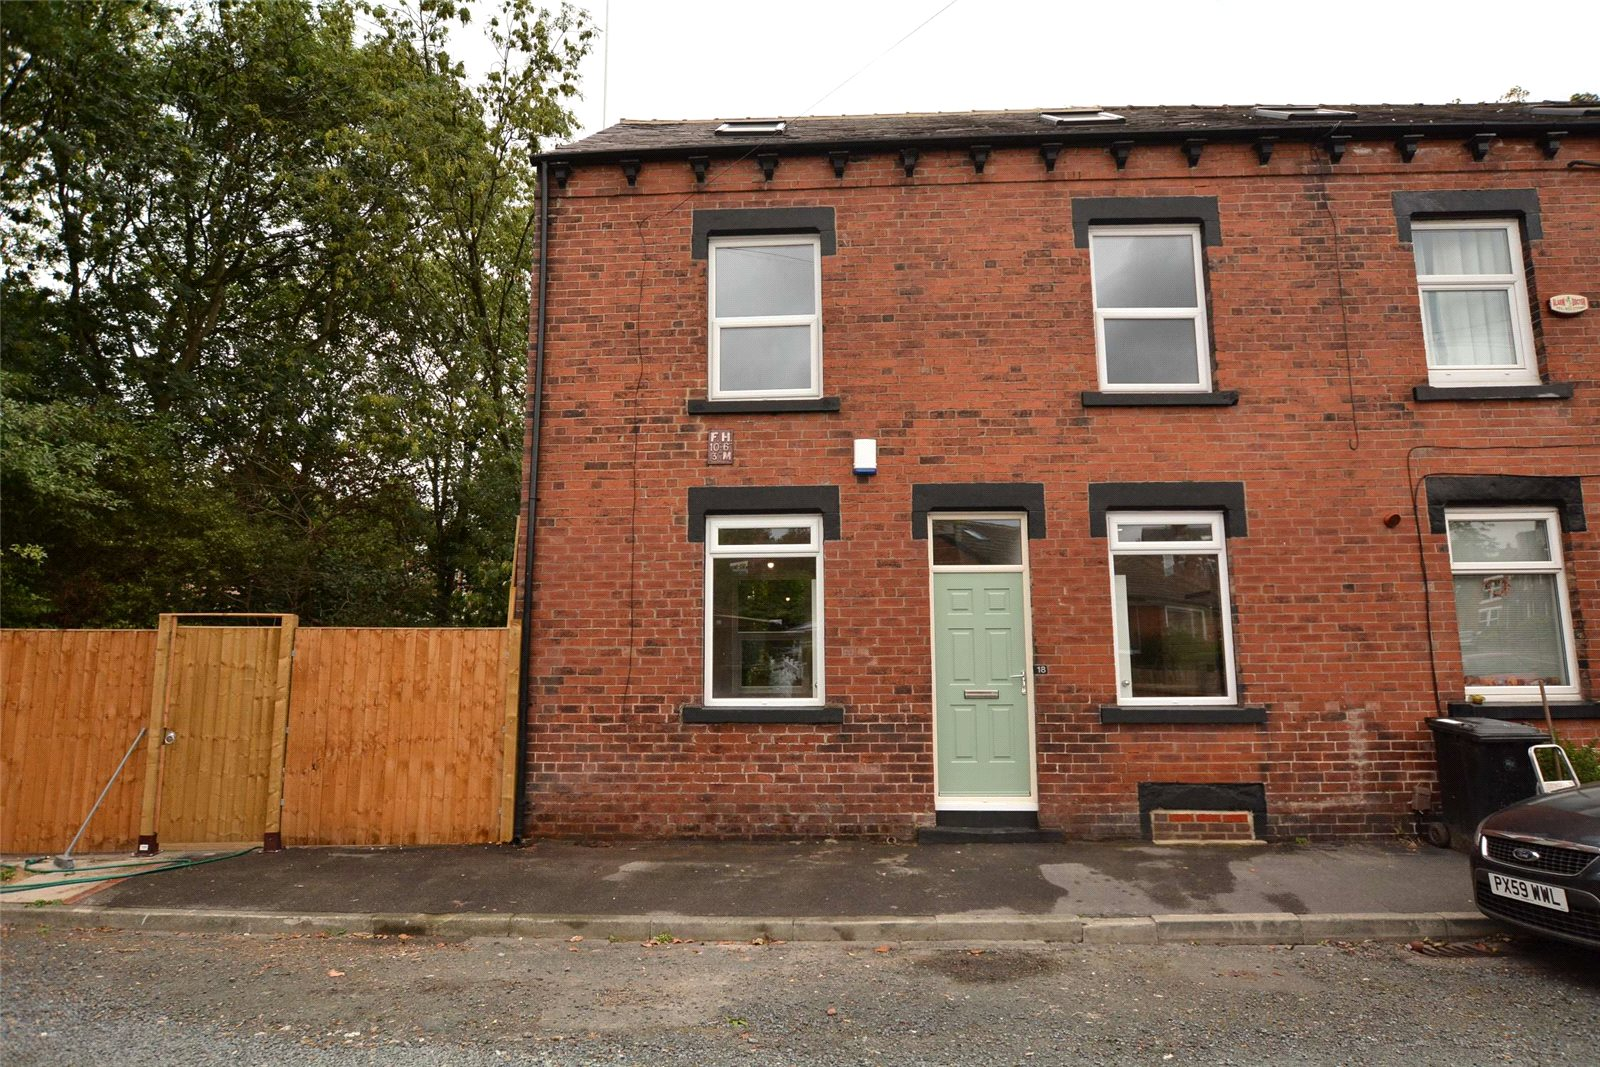 Property for sale in Leeds, exterior of red brick semi detached home